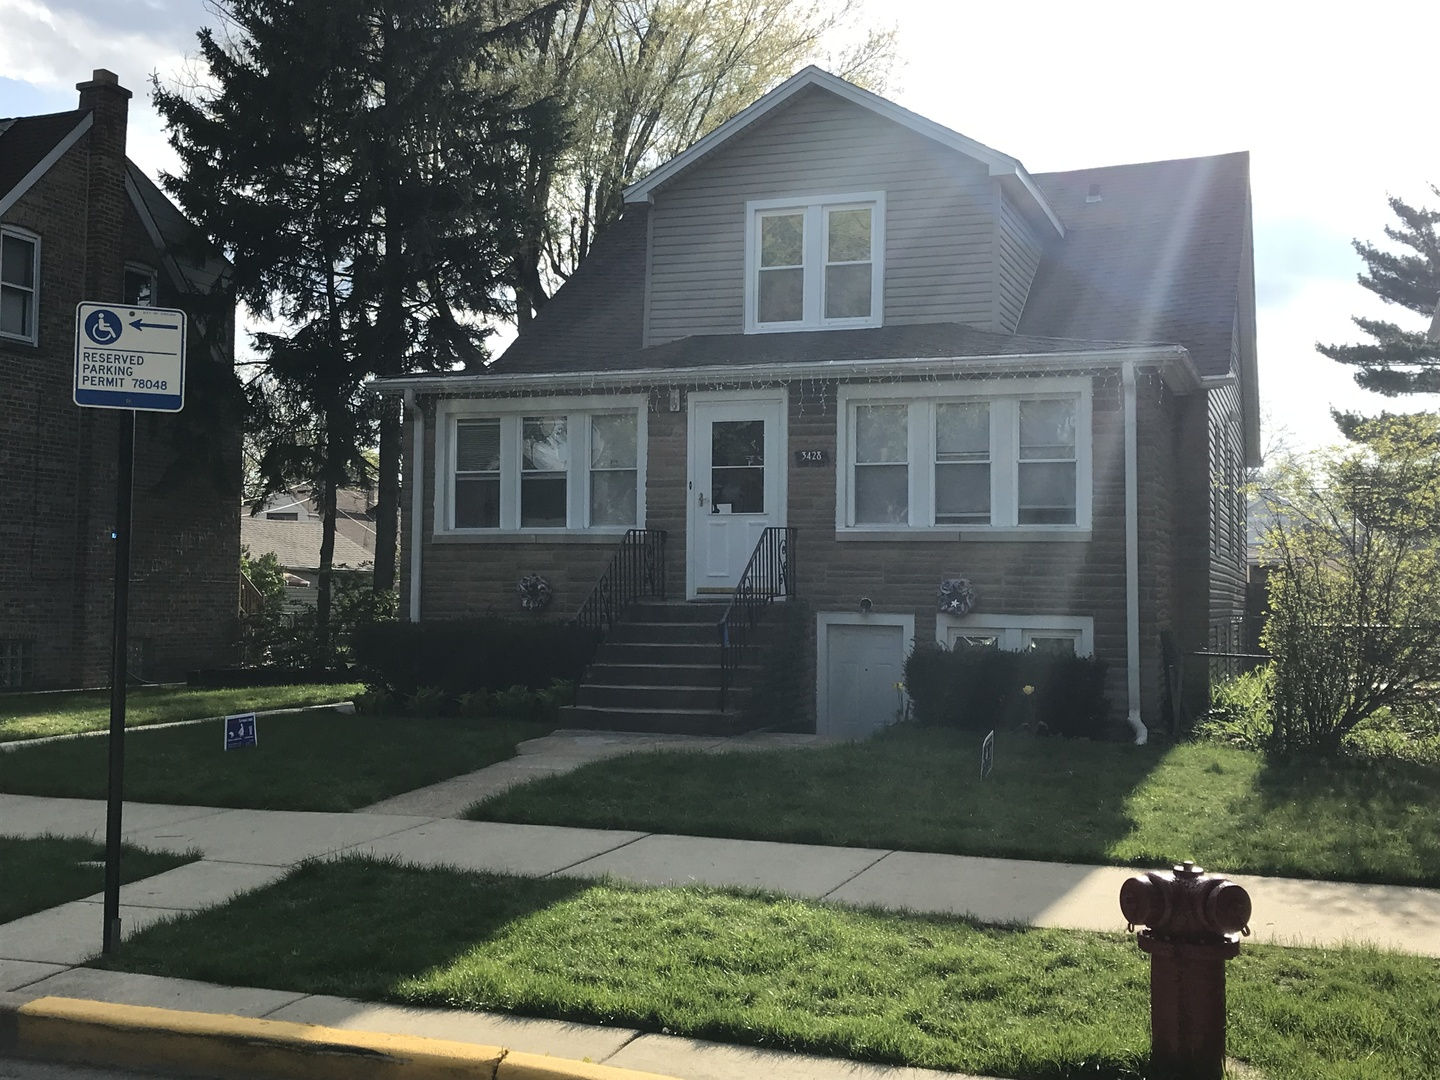 3428 Rutherford ,Chicago, Illinois 60634